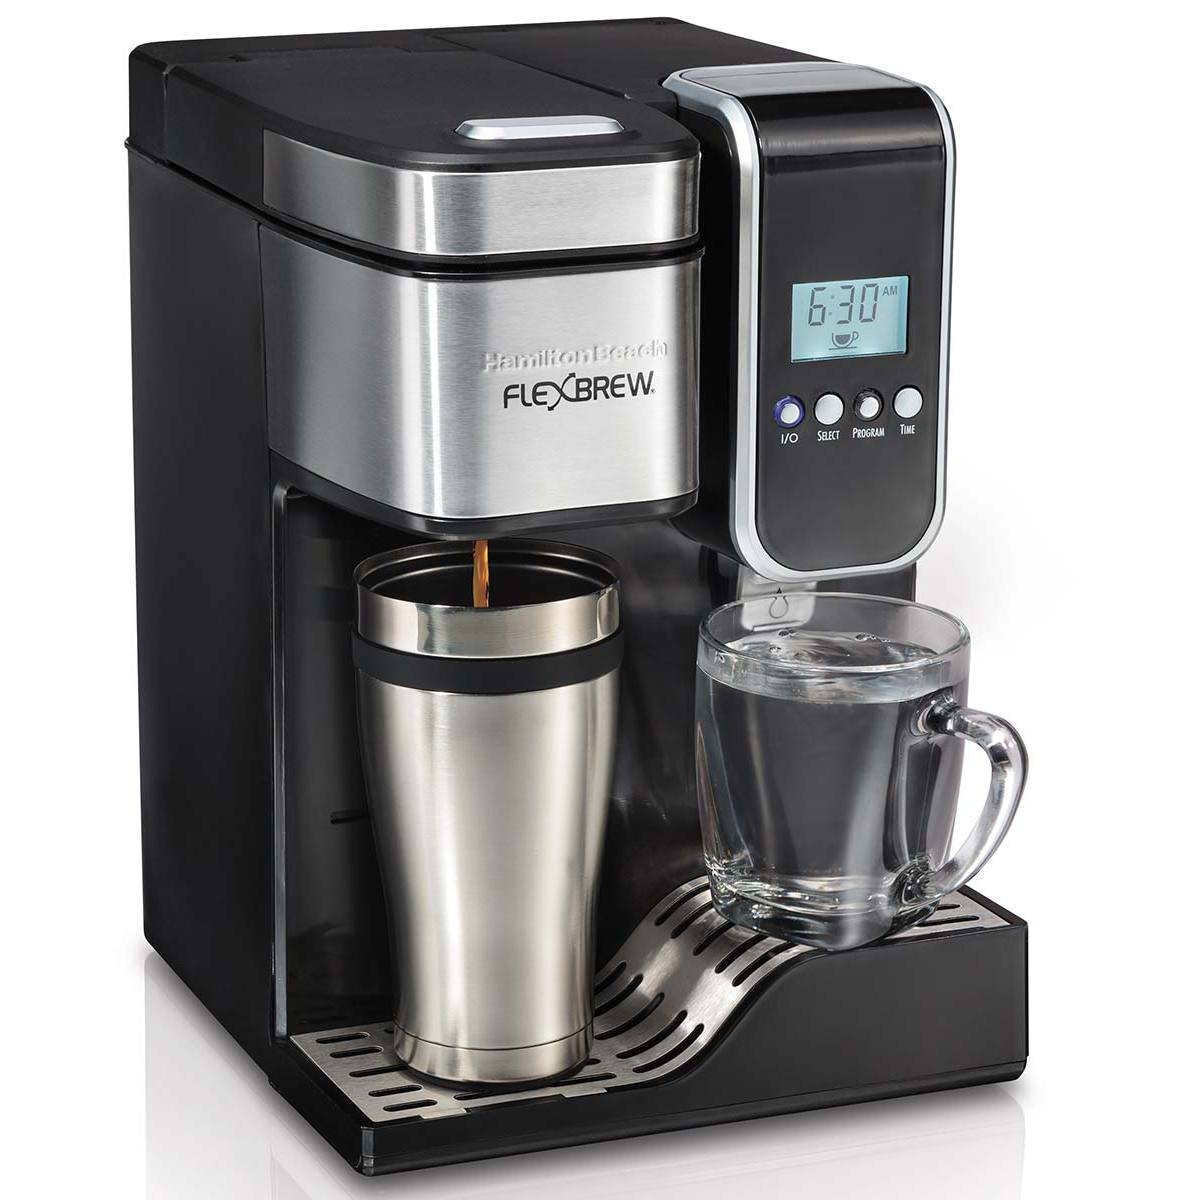 FlexBrew® Programmable Single-Serve Coffee Maker with Hot Water Dispenser (49988)